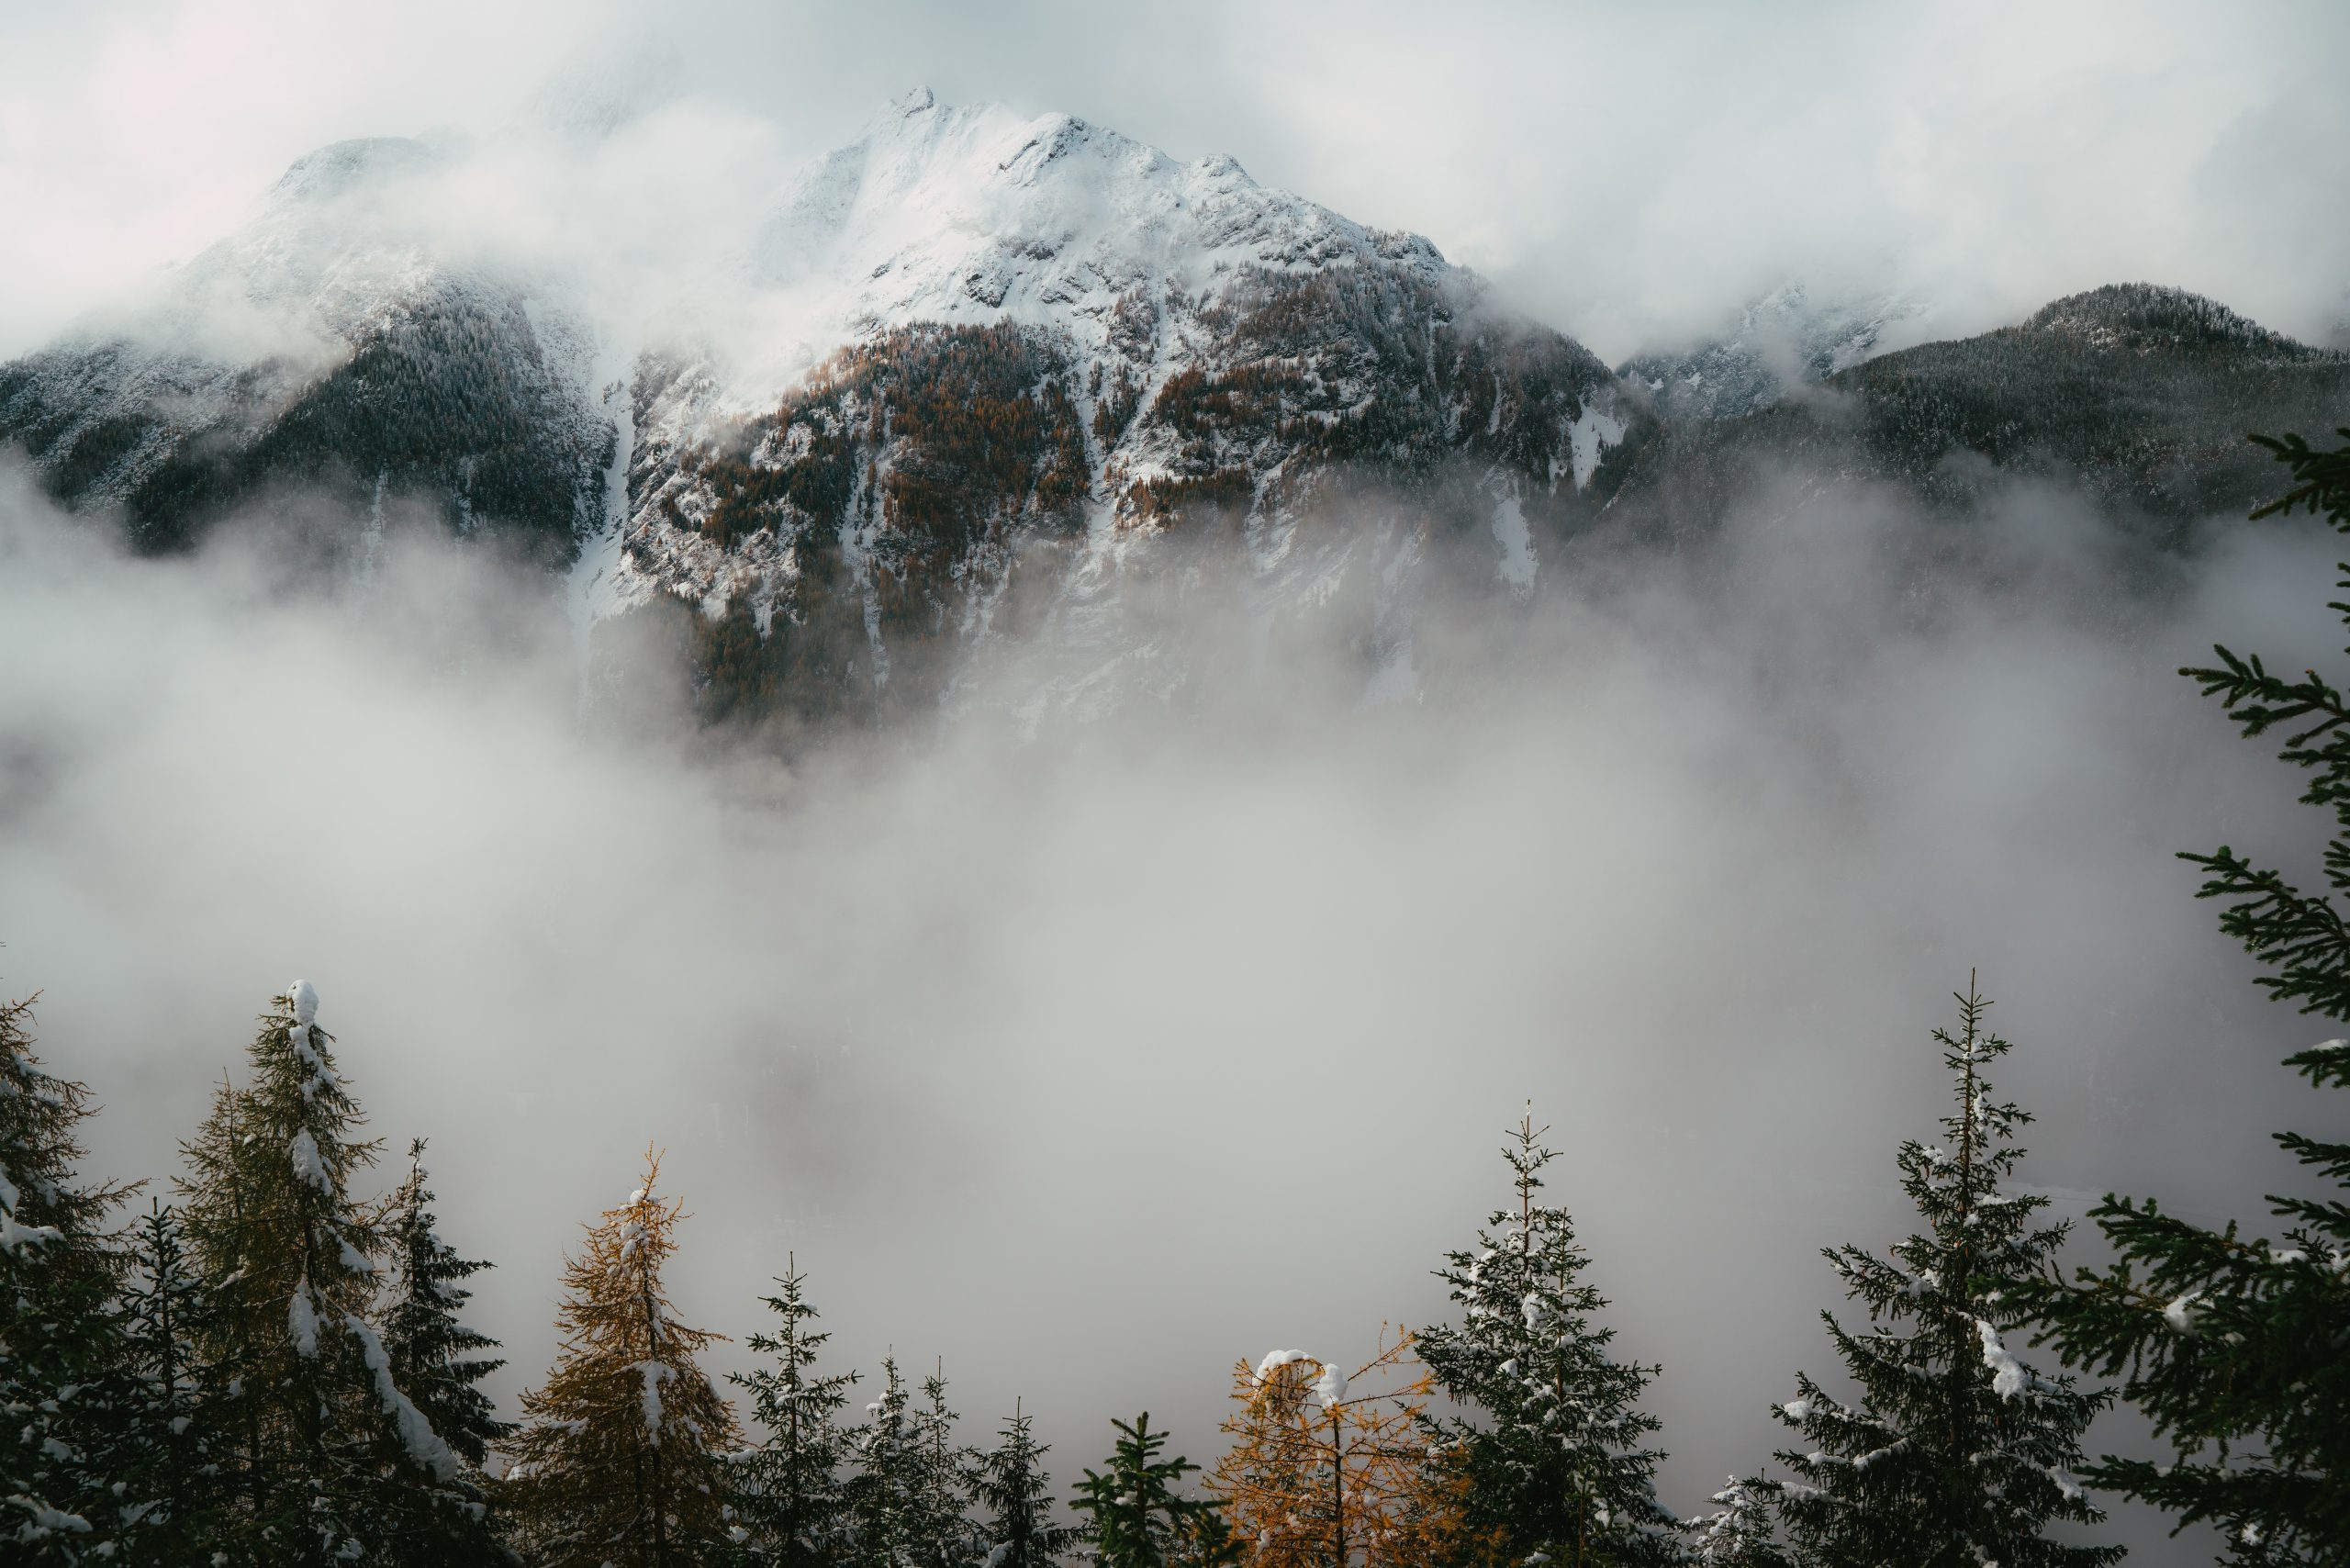 Tree and Mountain Landscape Wallpaper